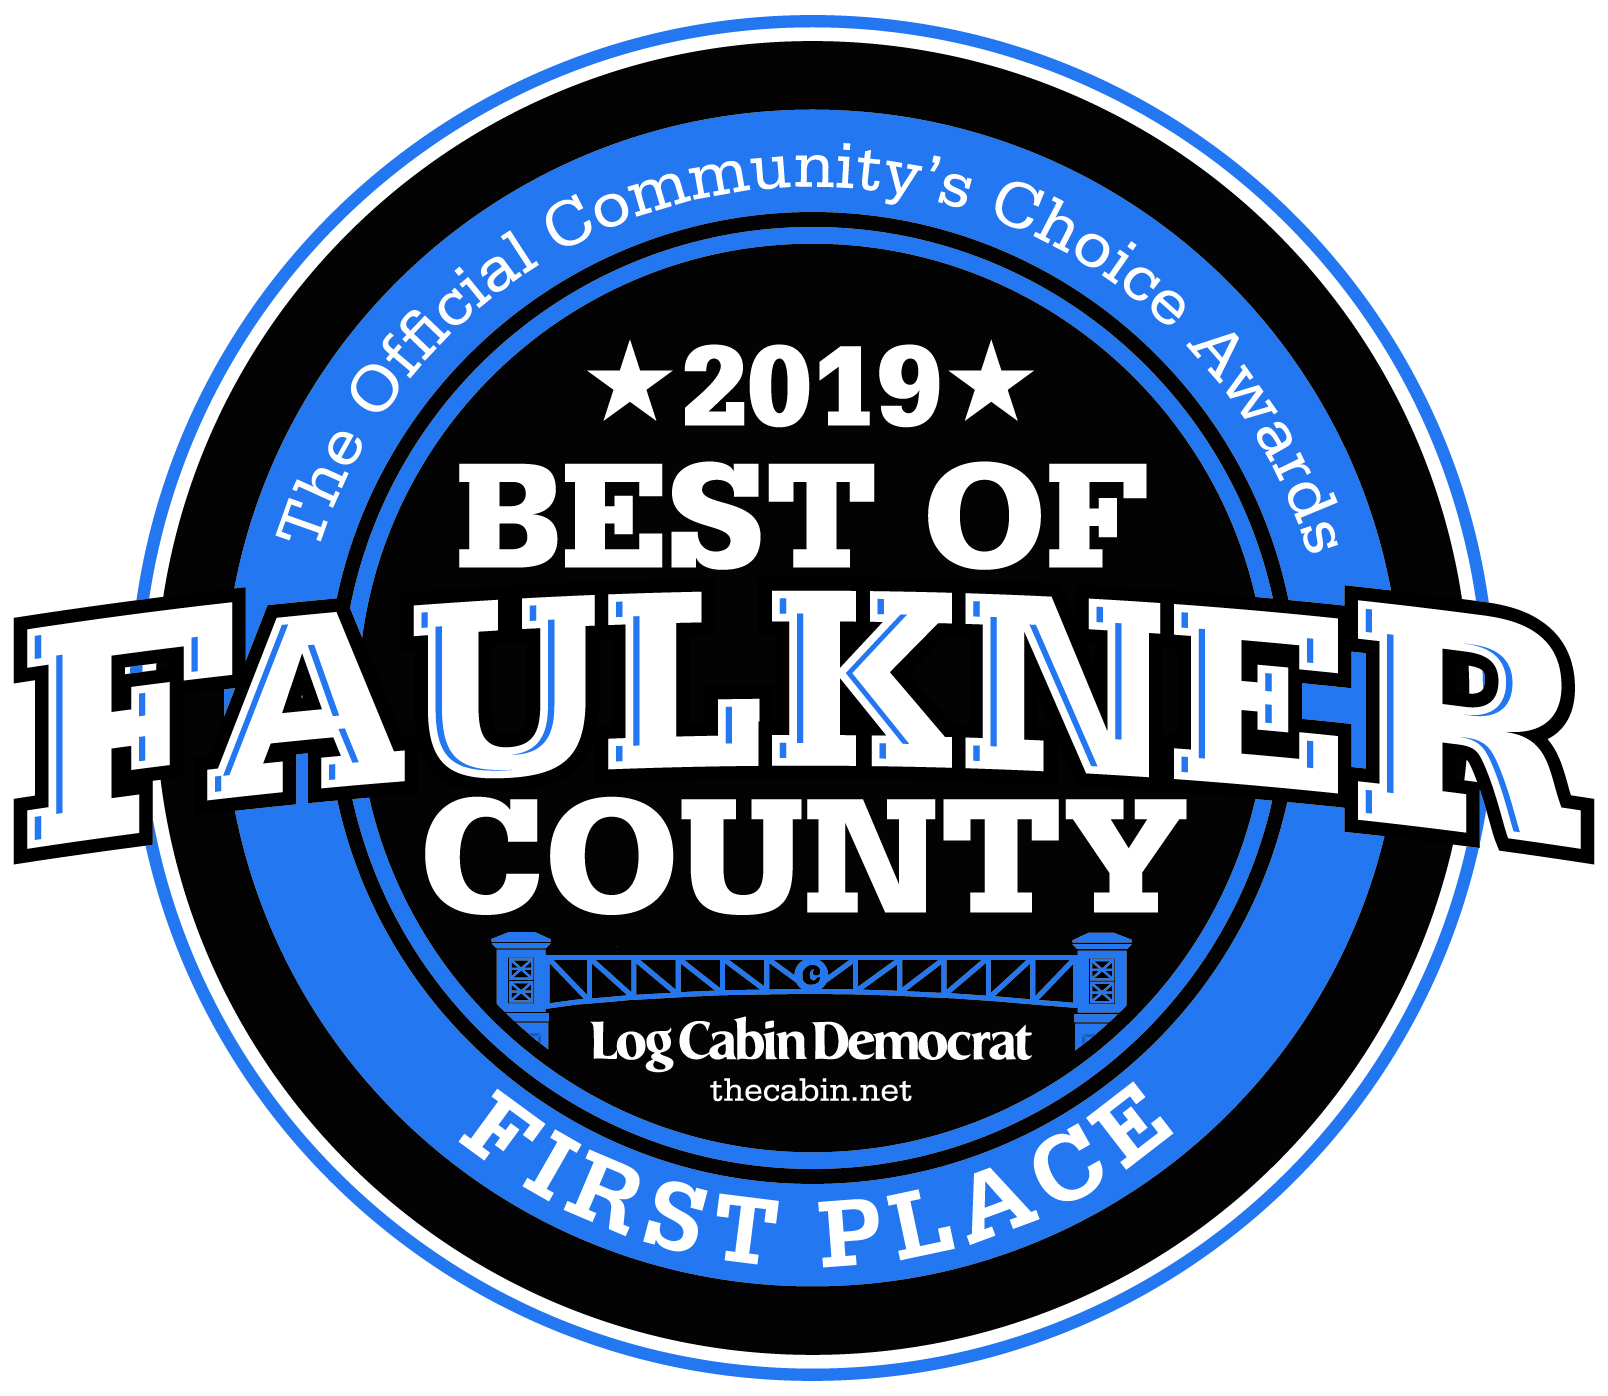 best of faulkner county 2019 conway institute of music lessons